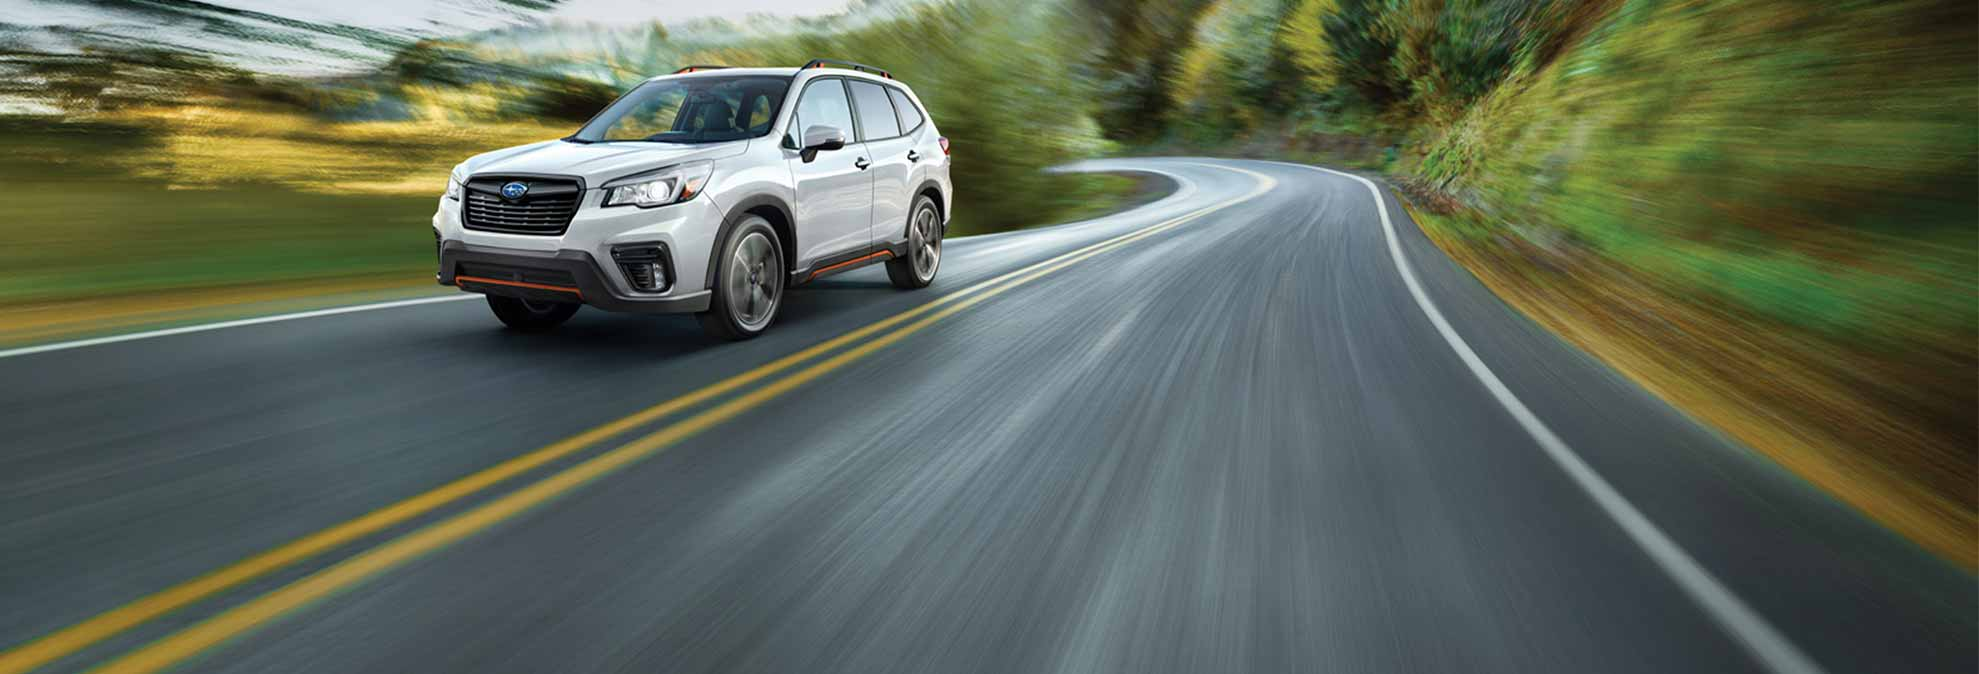 consumer reports car buying guide 2018